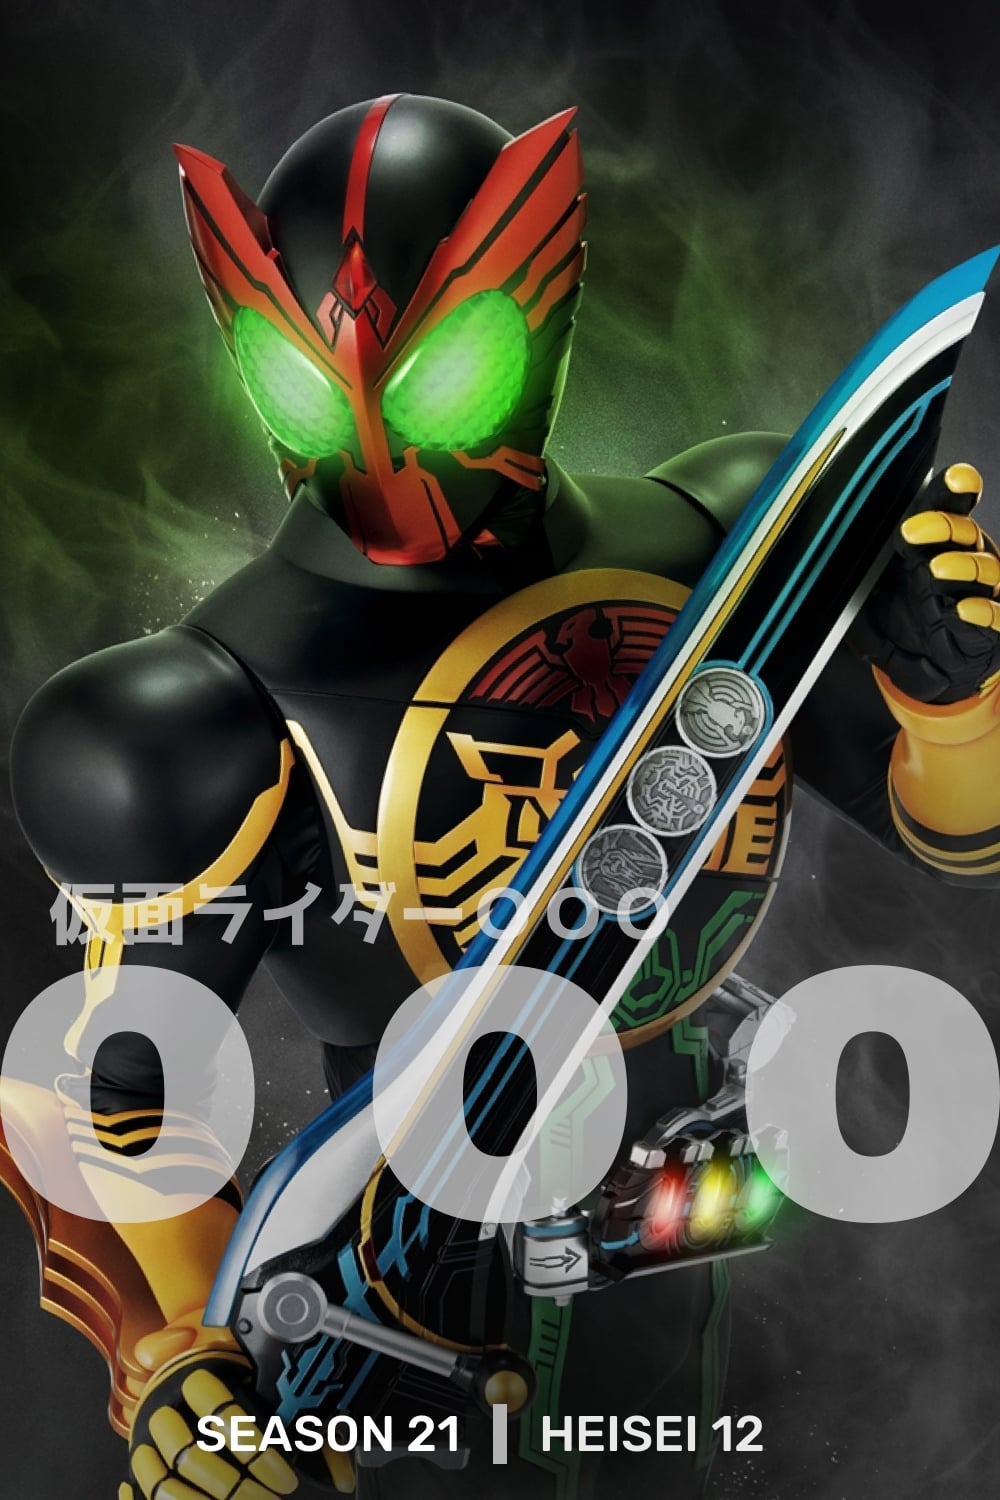 Kamen Rider - Season 21 Episode 2 : Greed, Ice Candy, Present Season 21